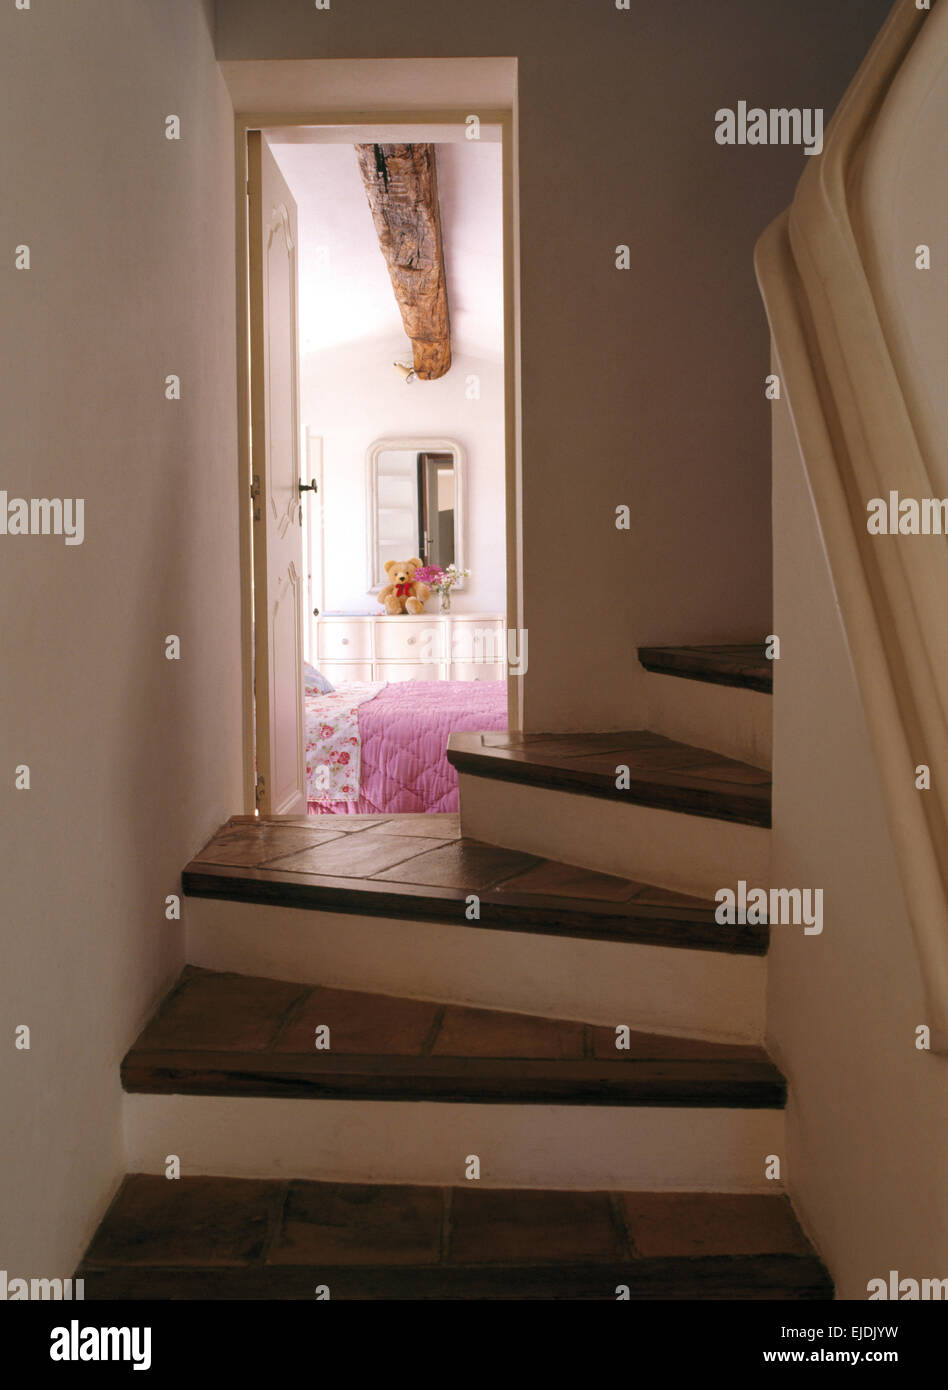 Tiled Stone Treads On Staircase With Open Door To French Country Bedroom